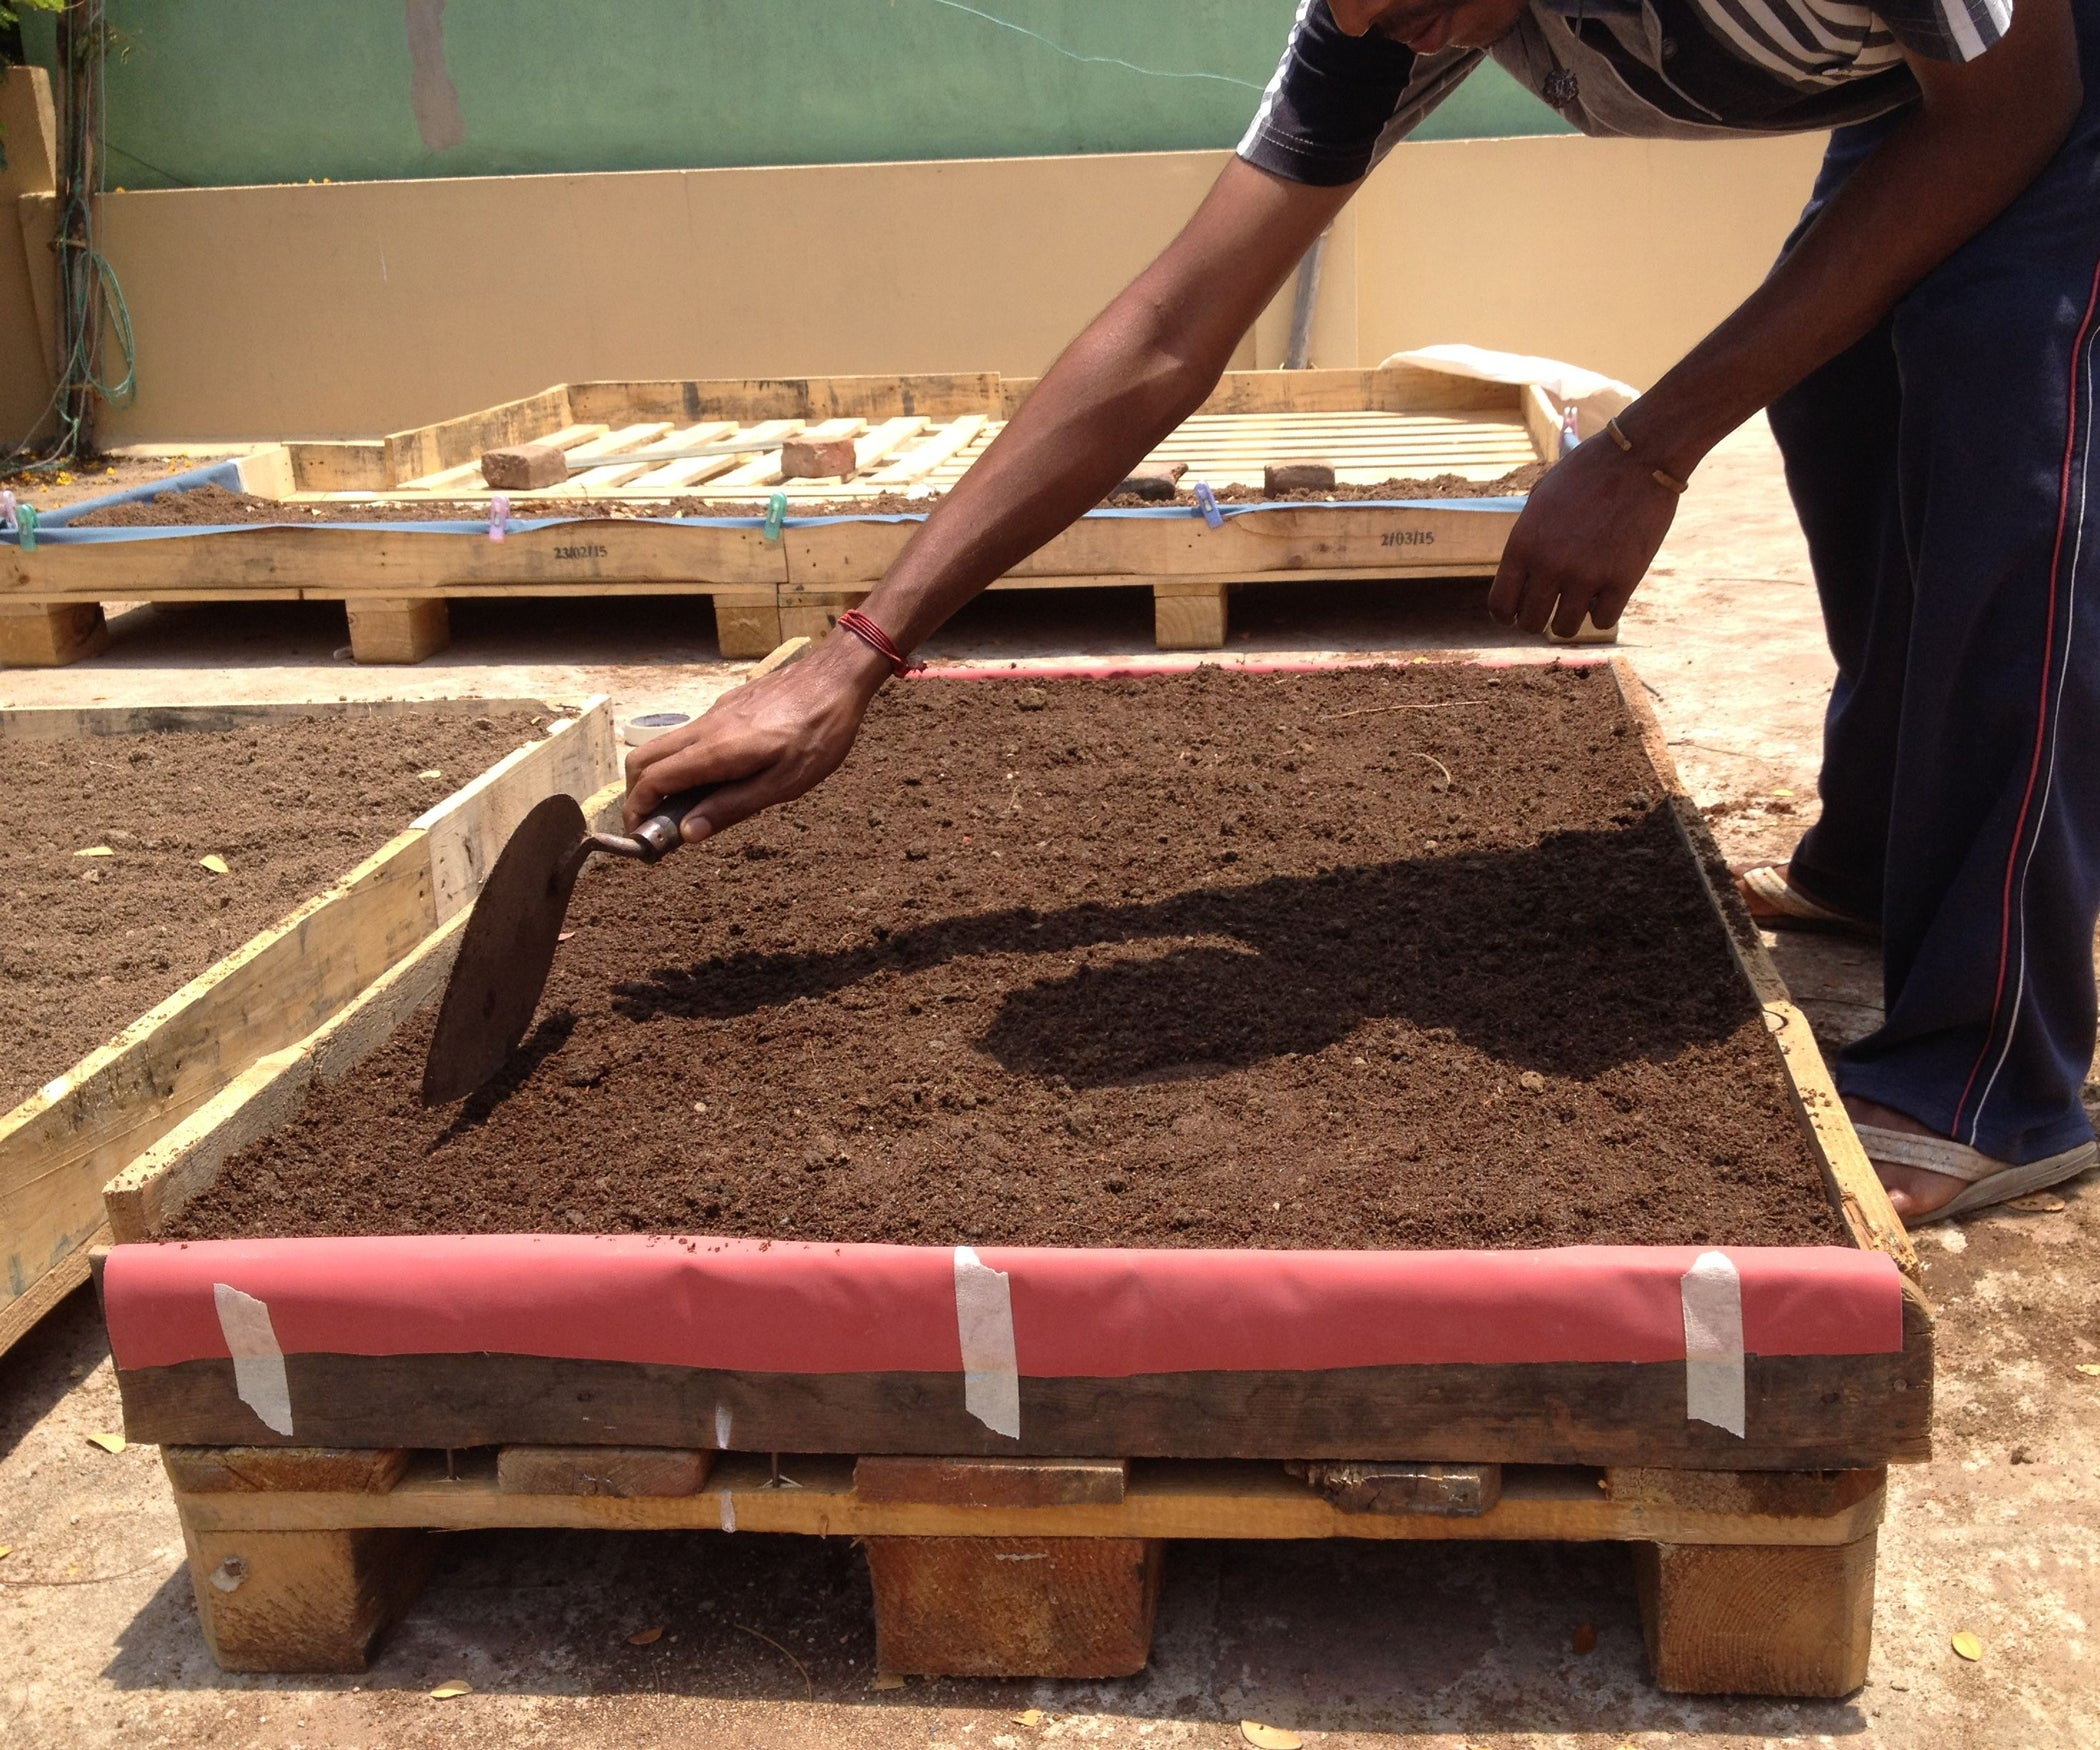 The Ultimate Terrace Garden: Square Foot Pallet One Gardening System ...